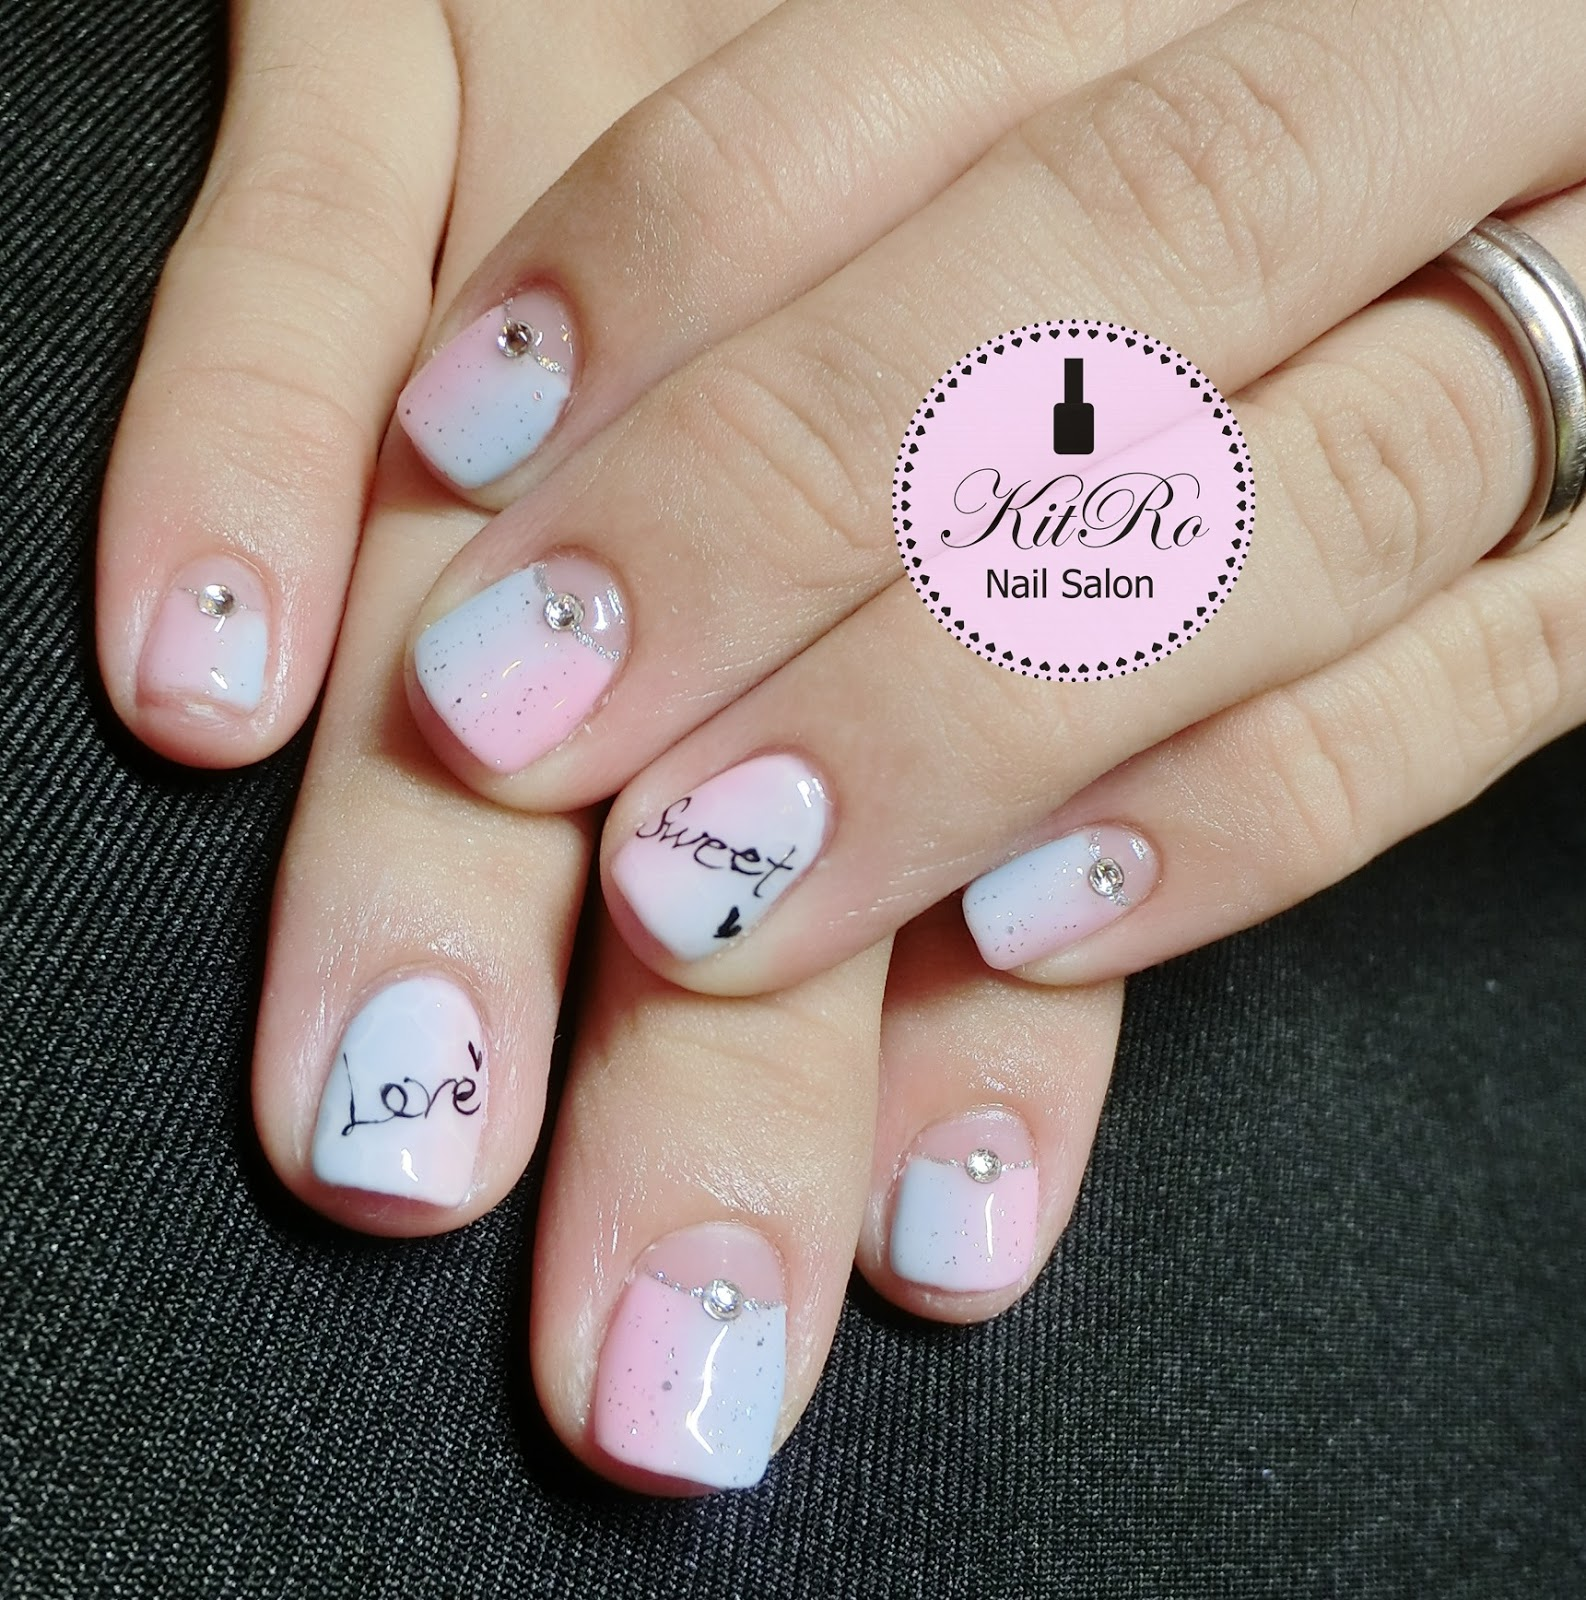 Kit-Ro Nail Salon: JANUARY 2016 - Nail Design